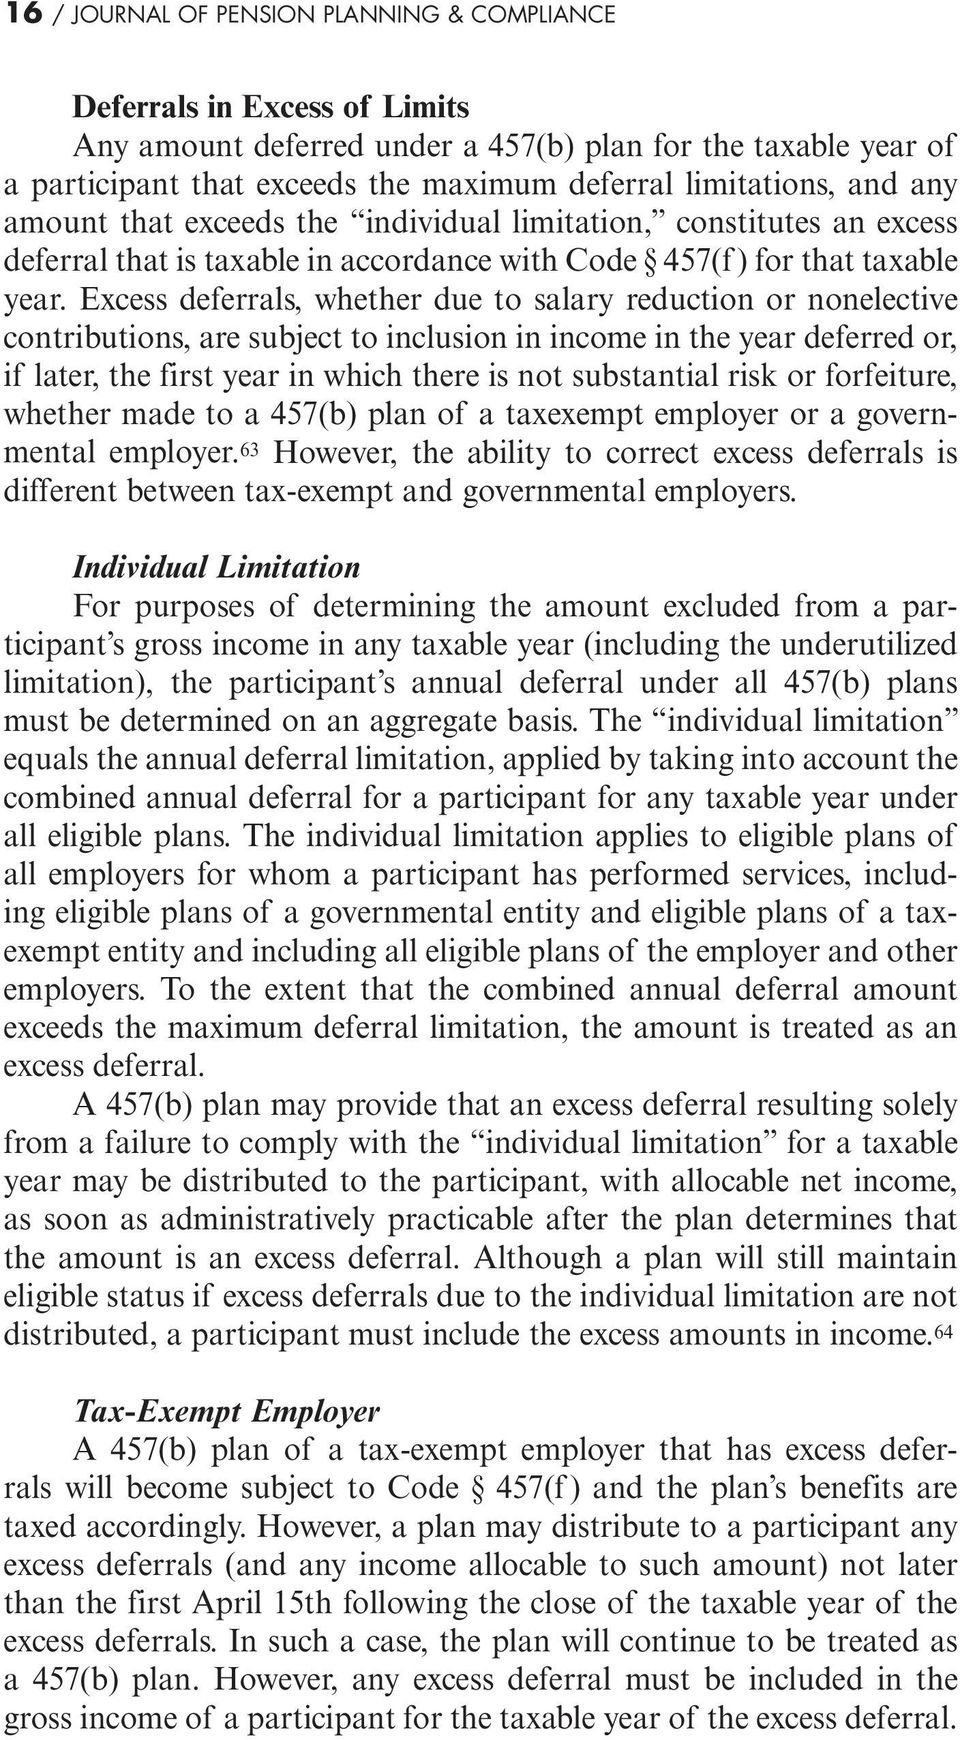 Excess deferrals, whether due to salary reduction or nonelective contributions, are subject to inclusion in income in the year deferred or, if later, the first year in which there is not substantial